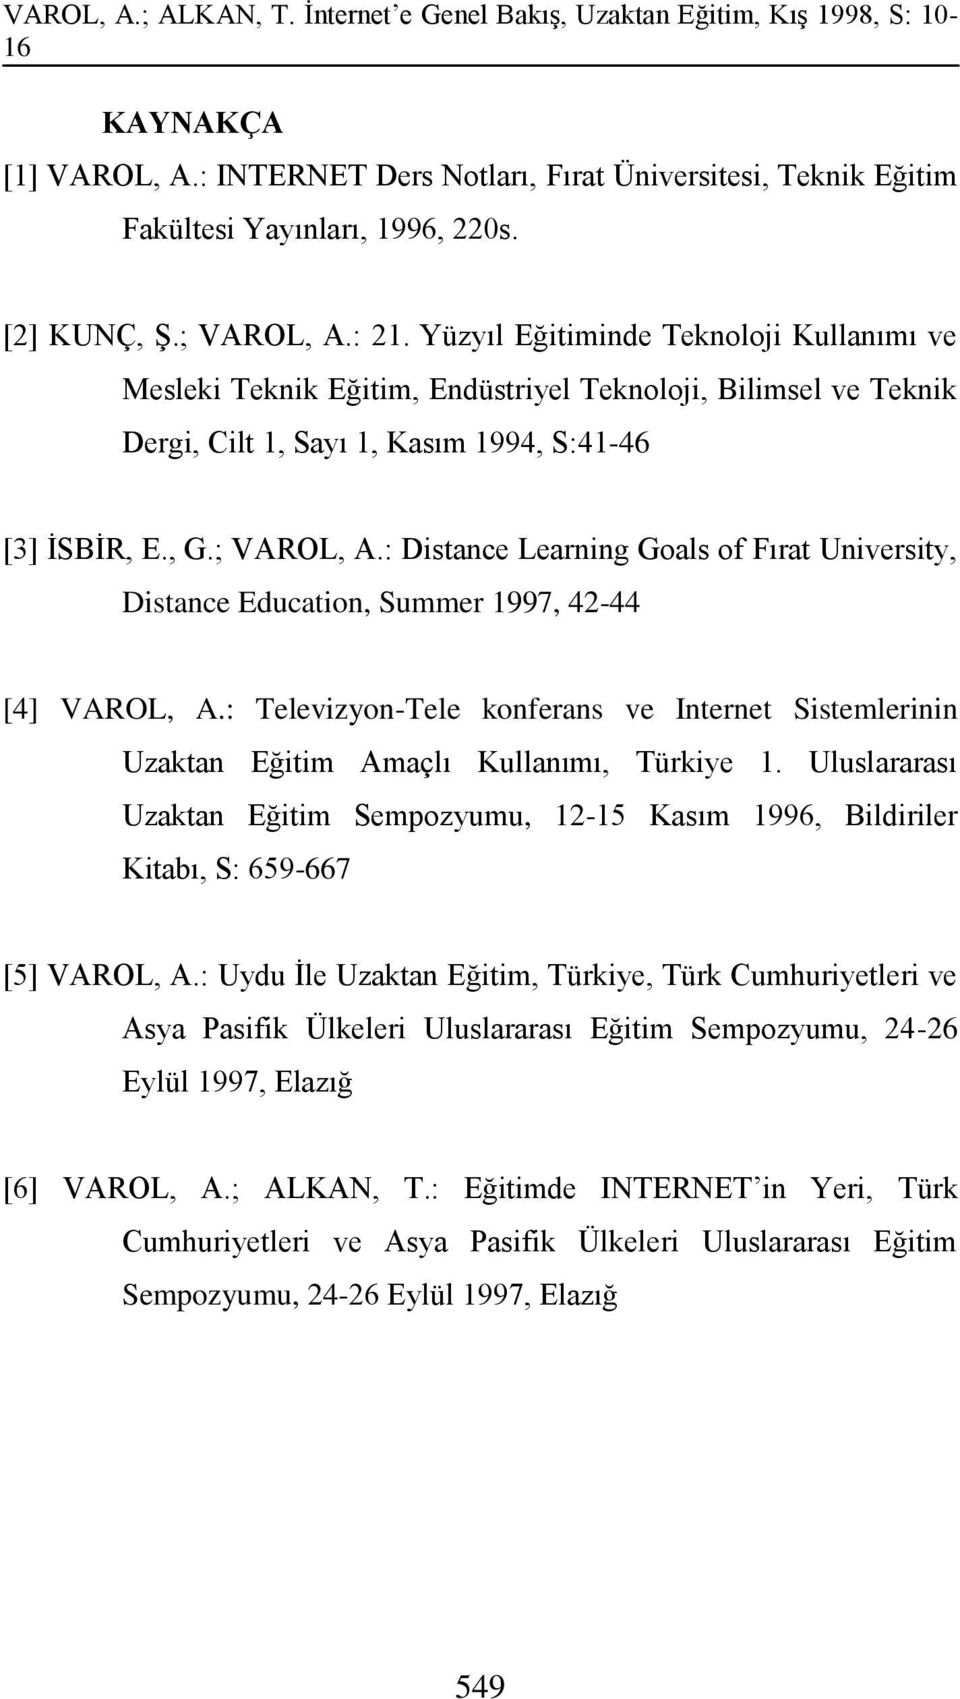 : Distance Learning Goals of Fırat University, Distance Education, Summer 1997, 42-44 [4] VAROL, A.: Televizyon-Tele konferans ve Internet Sistemlerinin Uzaktan Eğitim Amaçlı Kullanımı, Türkiye 1.